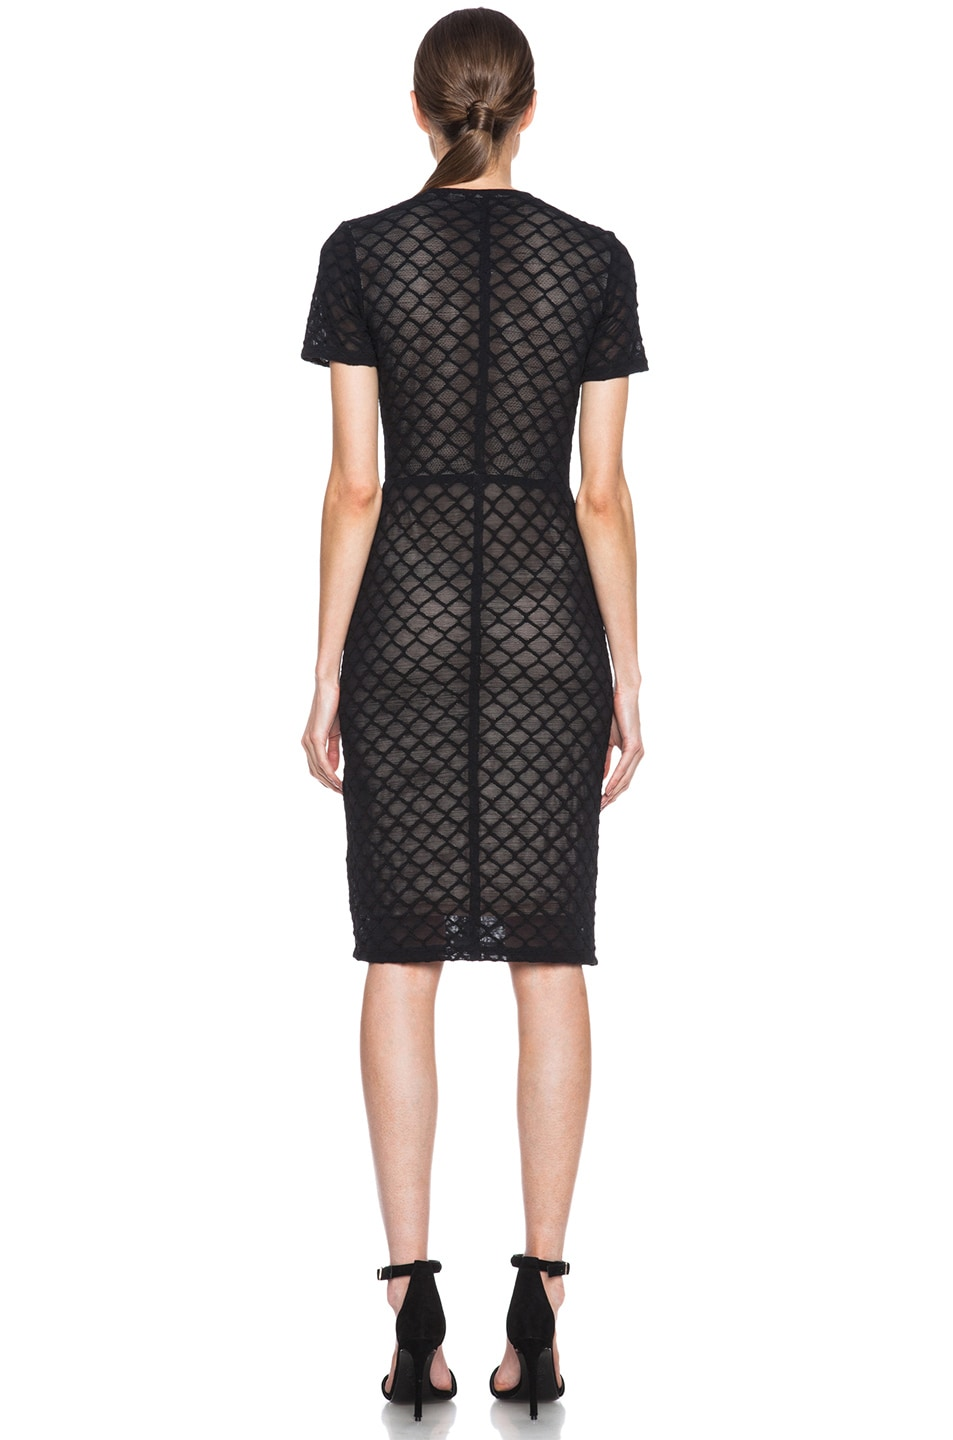 Image 4 of Raquel Allegra Knit Cocktail Dress in Black